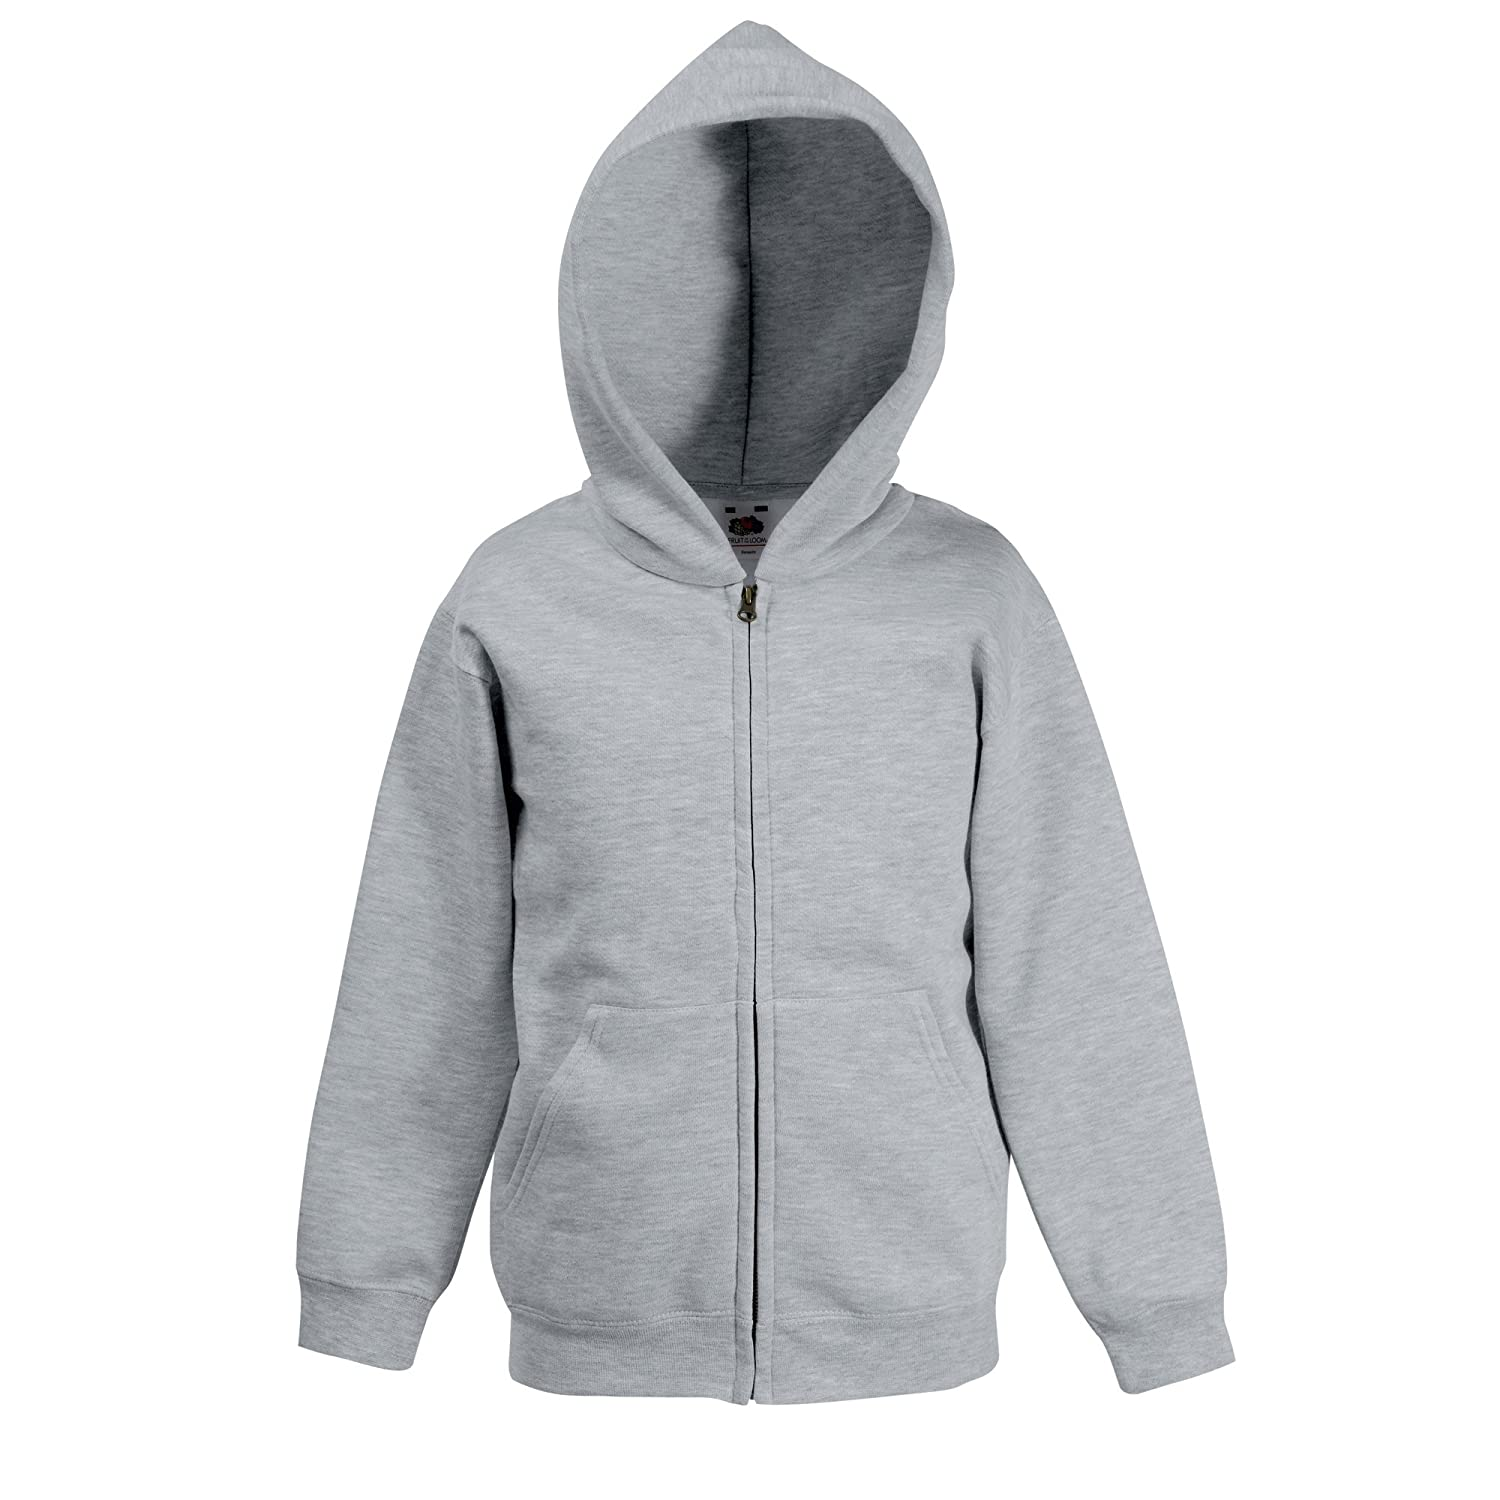 Amazon.com: Fruit of the Loom Kids Unisex Premium 70/30 Hooded Sweatshirt/Hoodie: Clothing